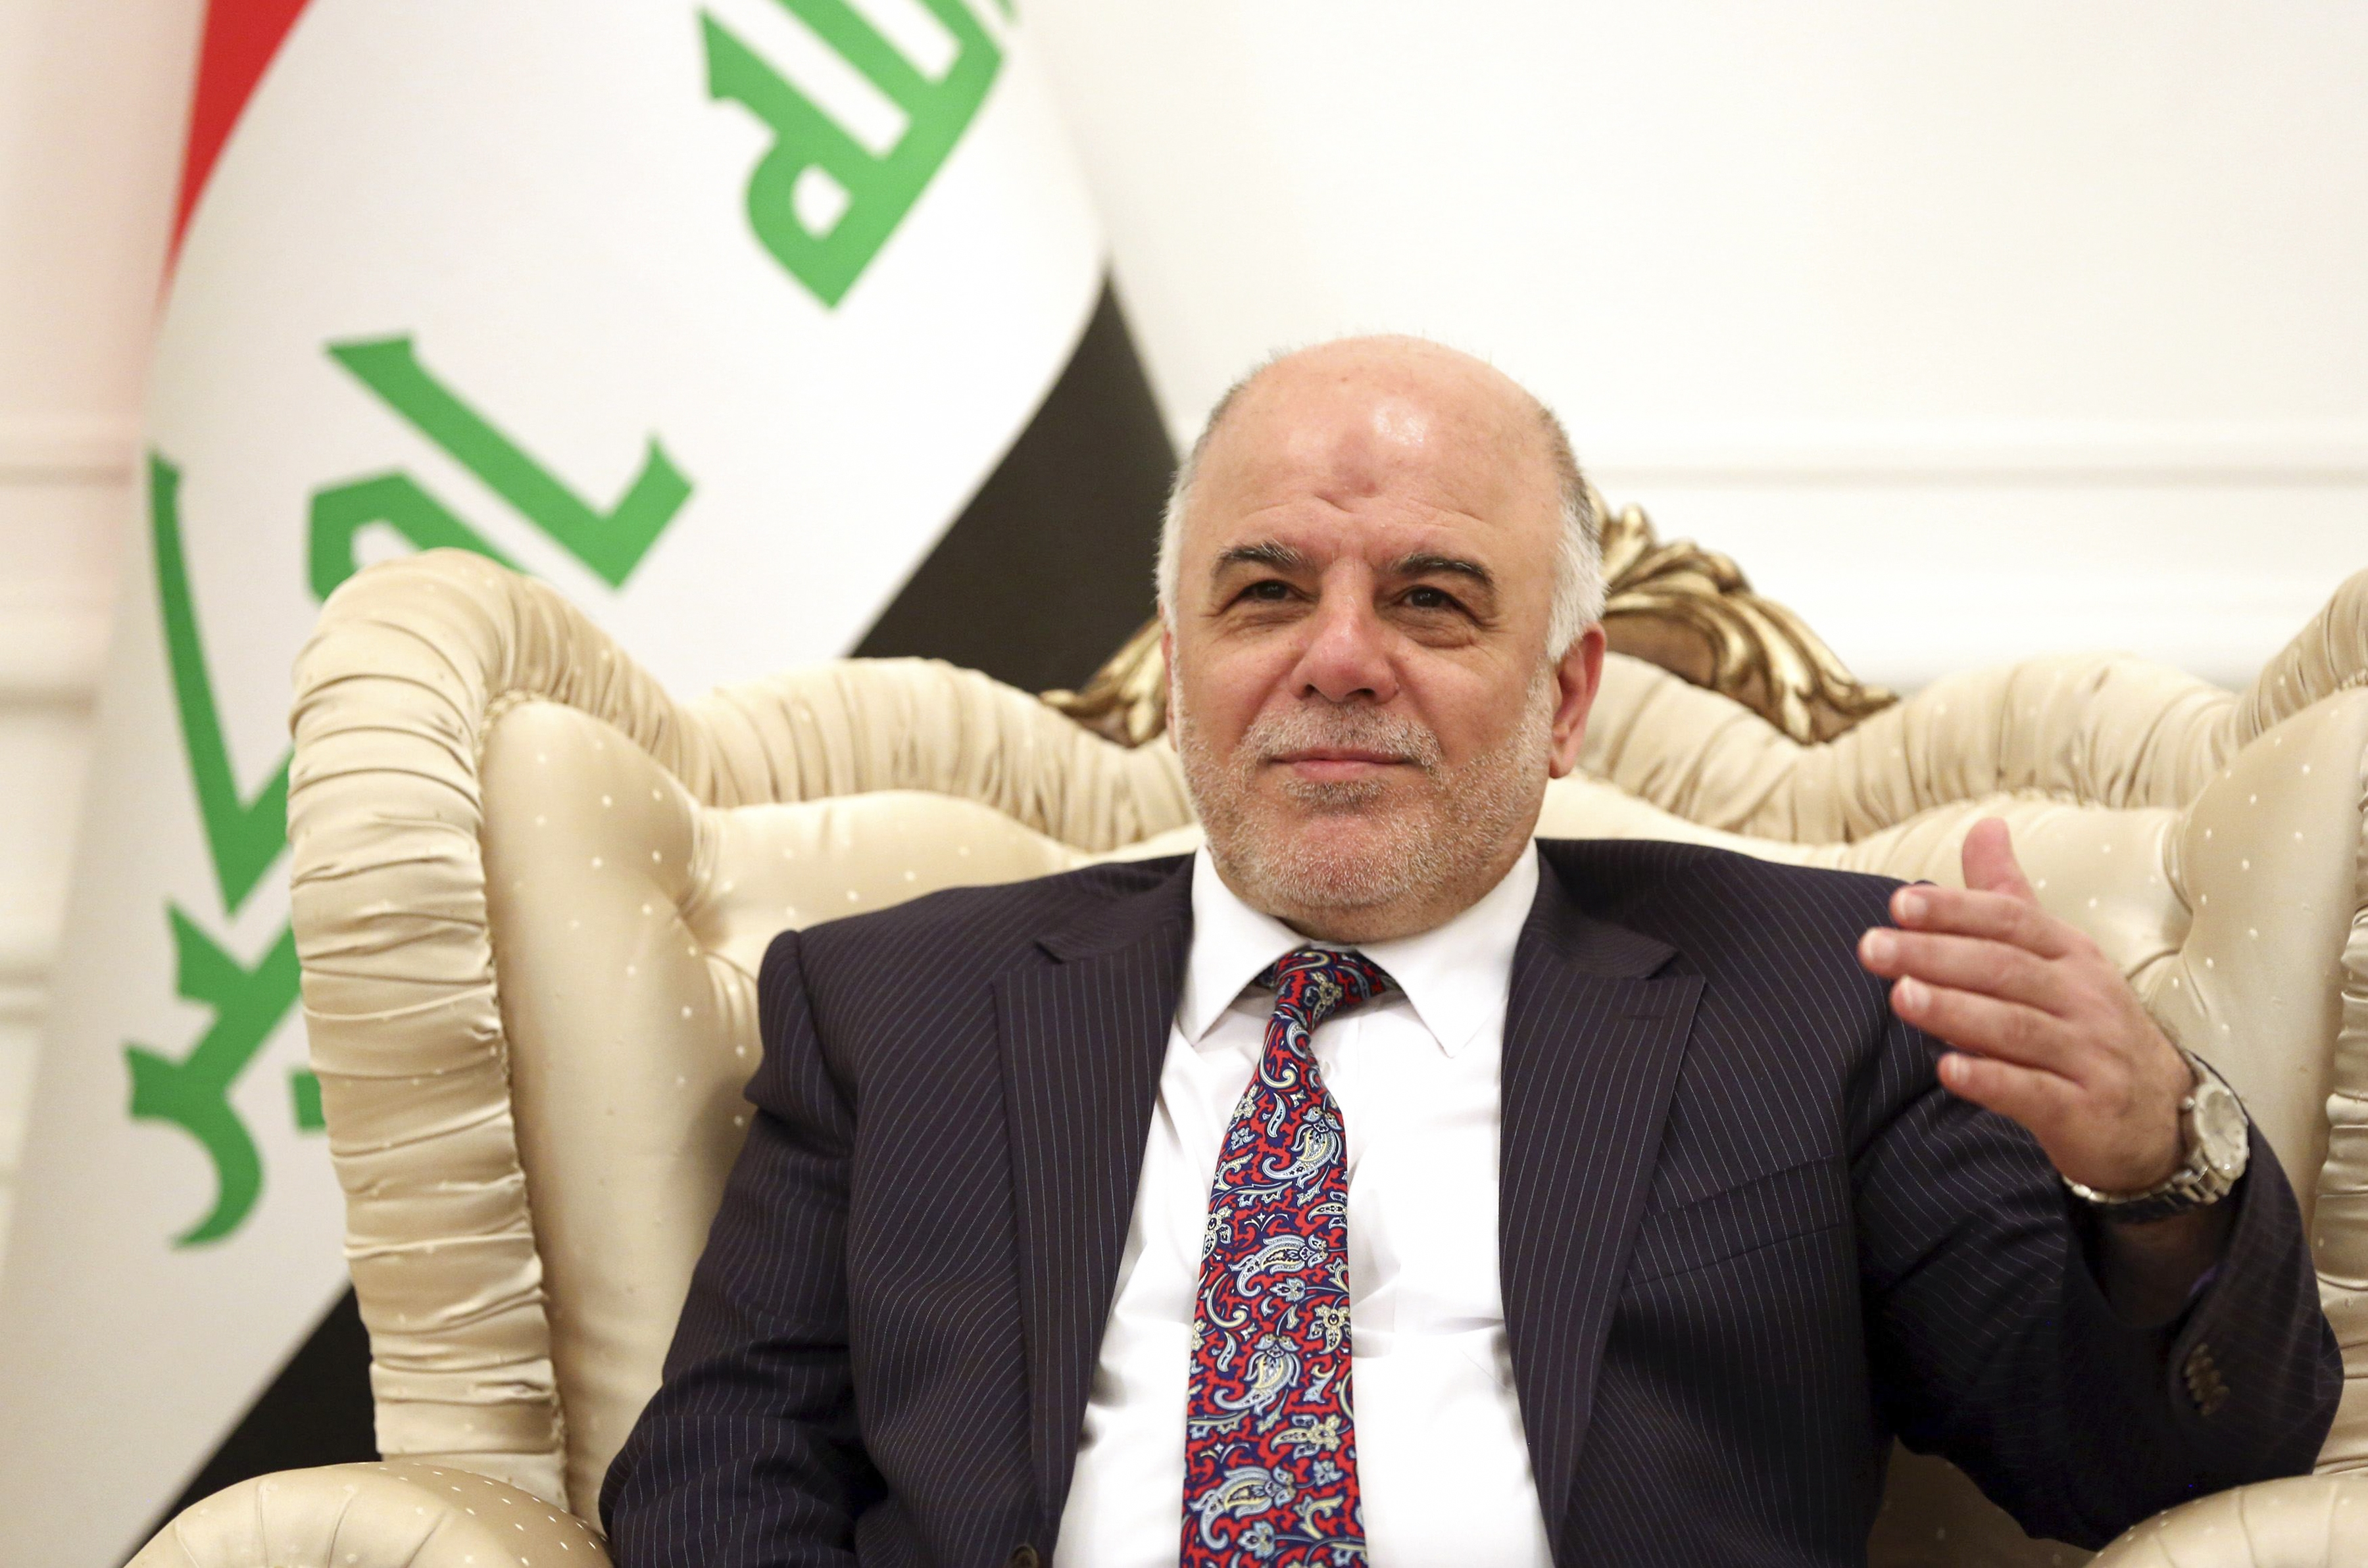 "New Iraqi Prime Minister Haider al-Abadi, shown here in August, says his country has been paying salaries to at least 50,000 soldiers who do not exist. He expects more ""ghost soldiers"" to be uncovered as the investigation proceeds."